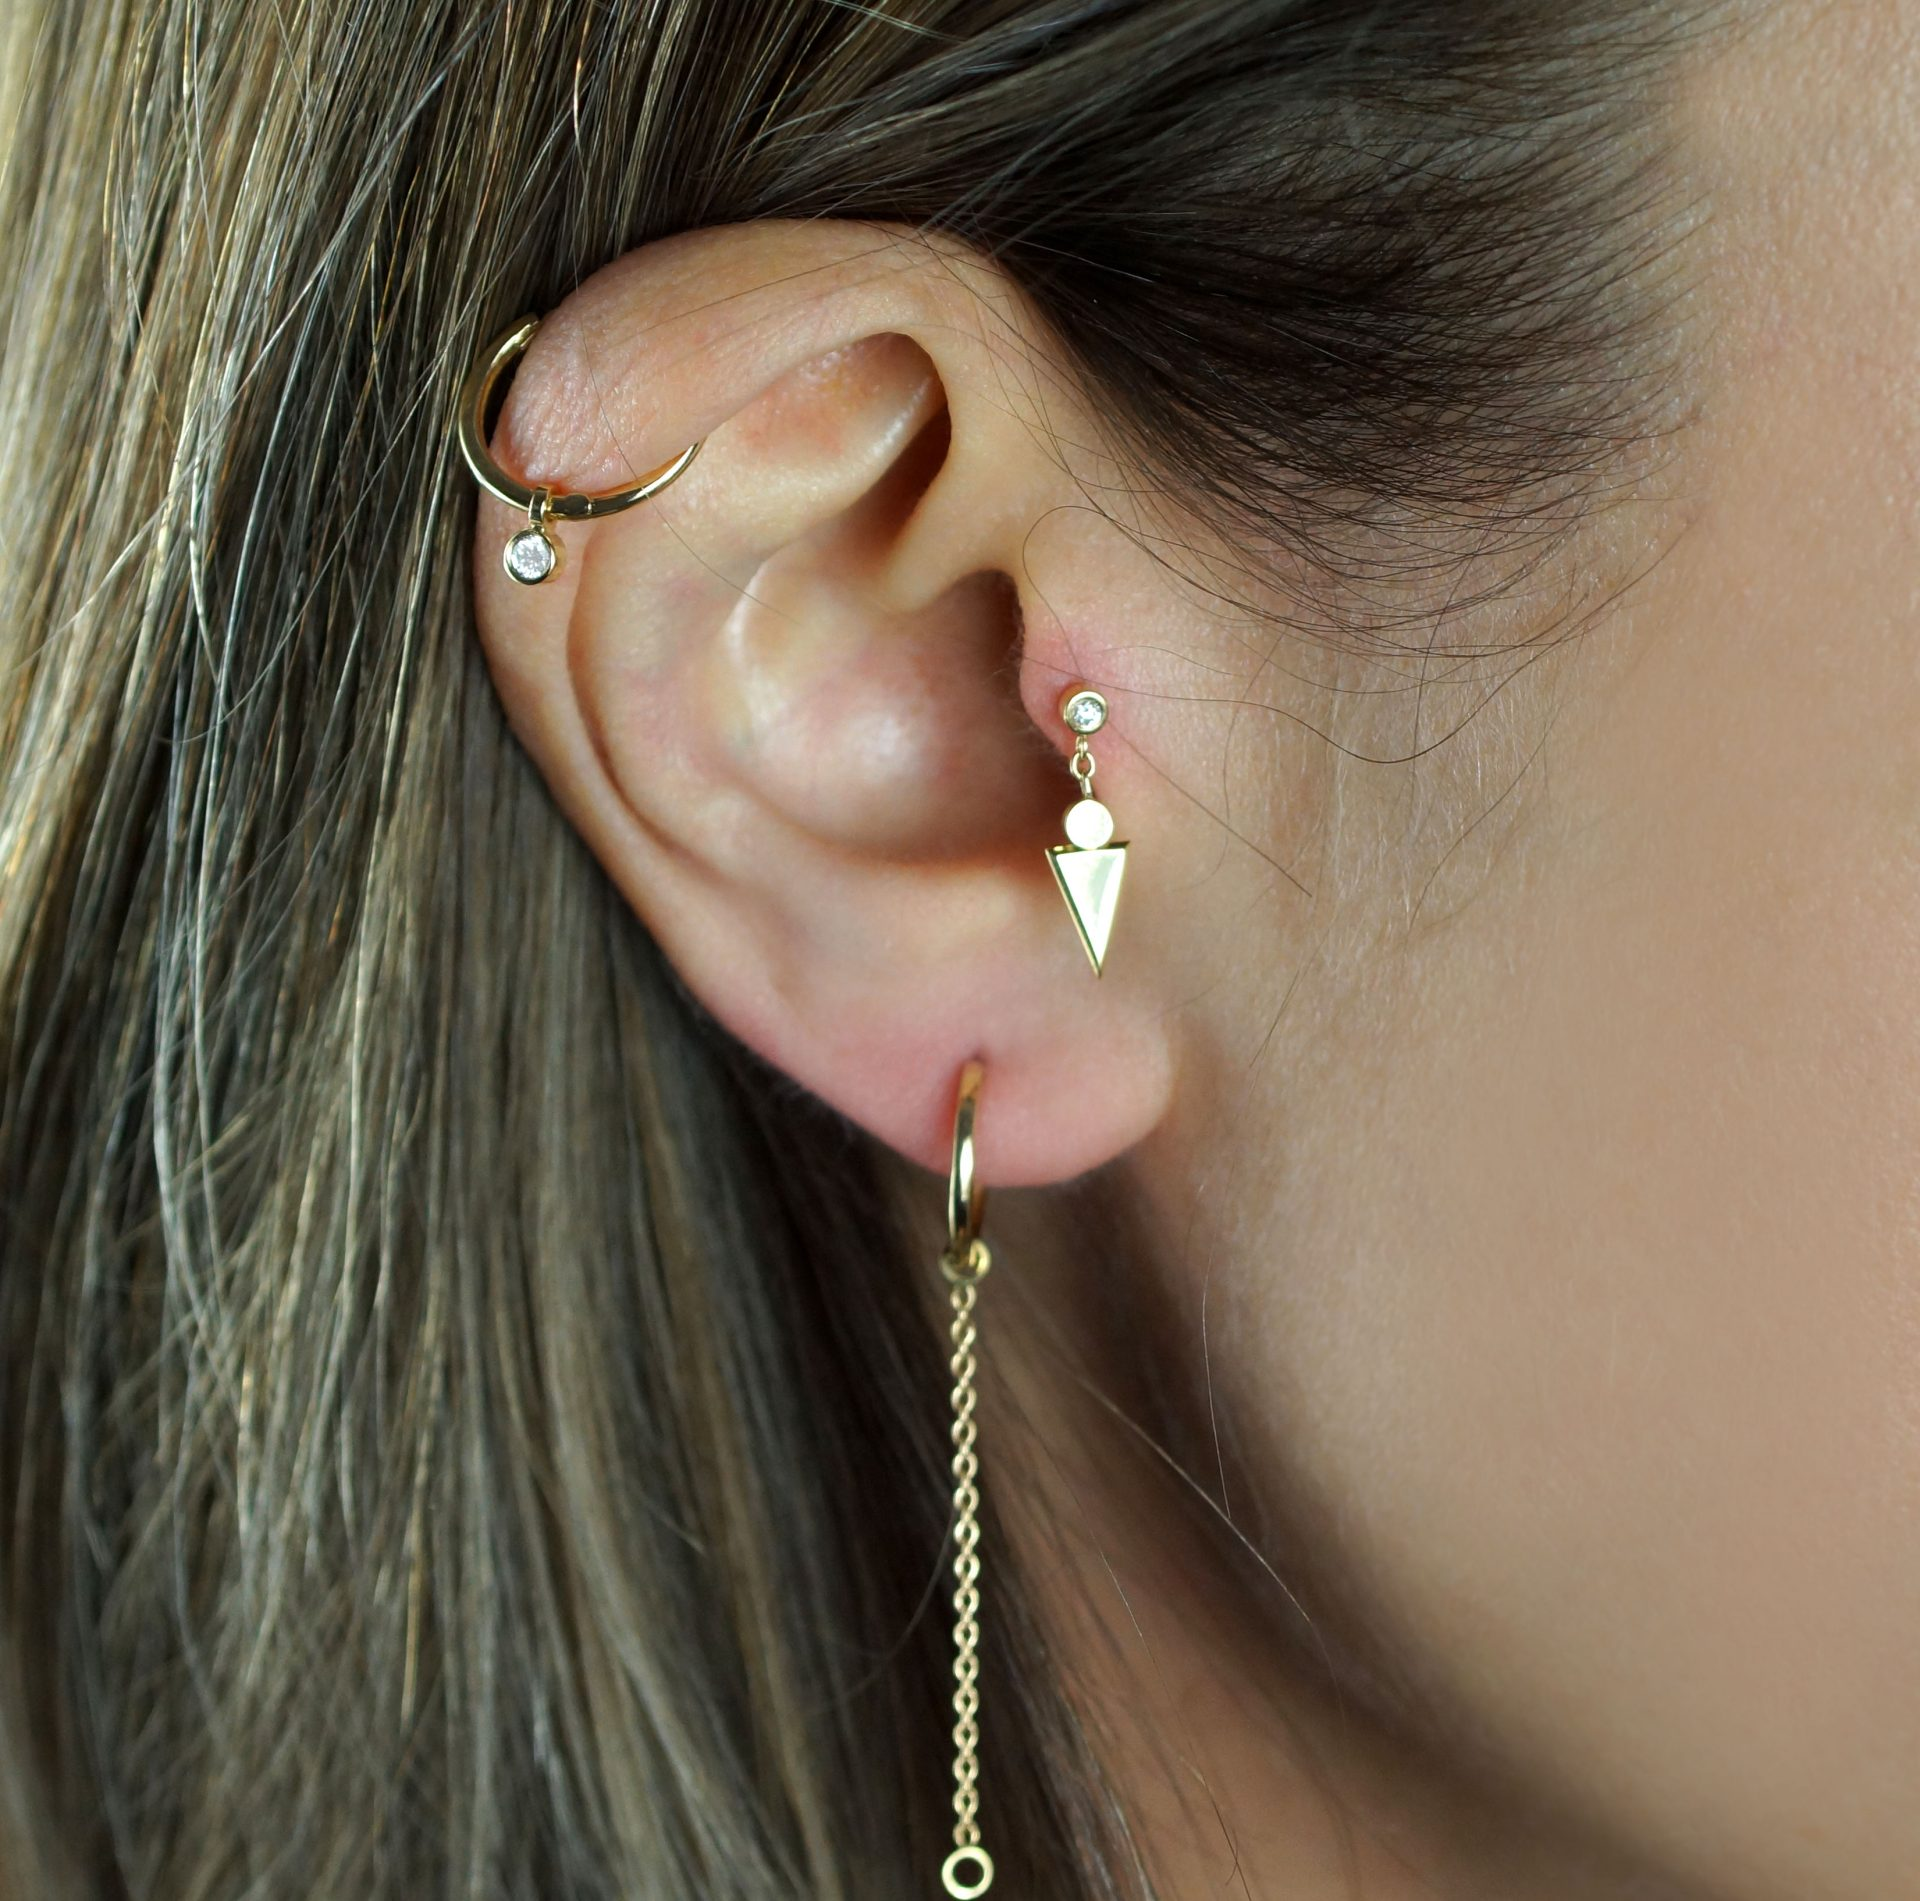 18k gold cartilage earrings hoops